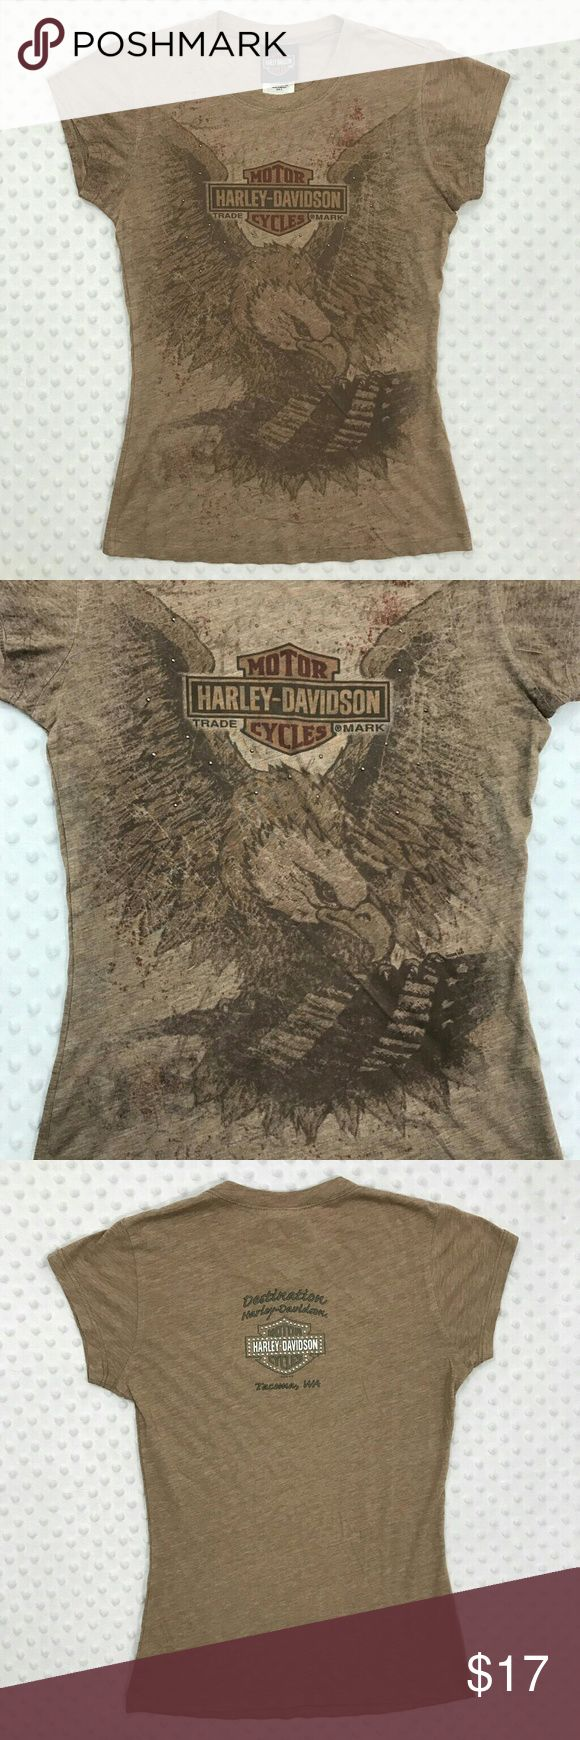 Harley Davidson Brown Short Sleeve Item: Harley Davidson Women's Small Brown Short Sleeve Eagle Print Jeweled Knit Top  Size: Small  Refer to measurements below for accurate fit! Measured flat:  16  inches armpit to armpit 1 inches armpit to the end of the sleeve 22  inches from collar seam to shirttail  Base Color: Brown  Fabric: Cotton, Polyester Harley-Davidson Tops Tees - Short Sleeve